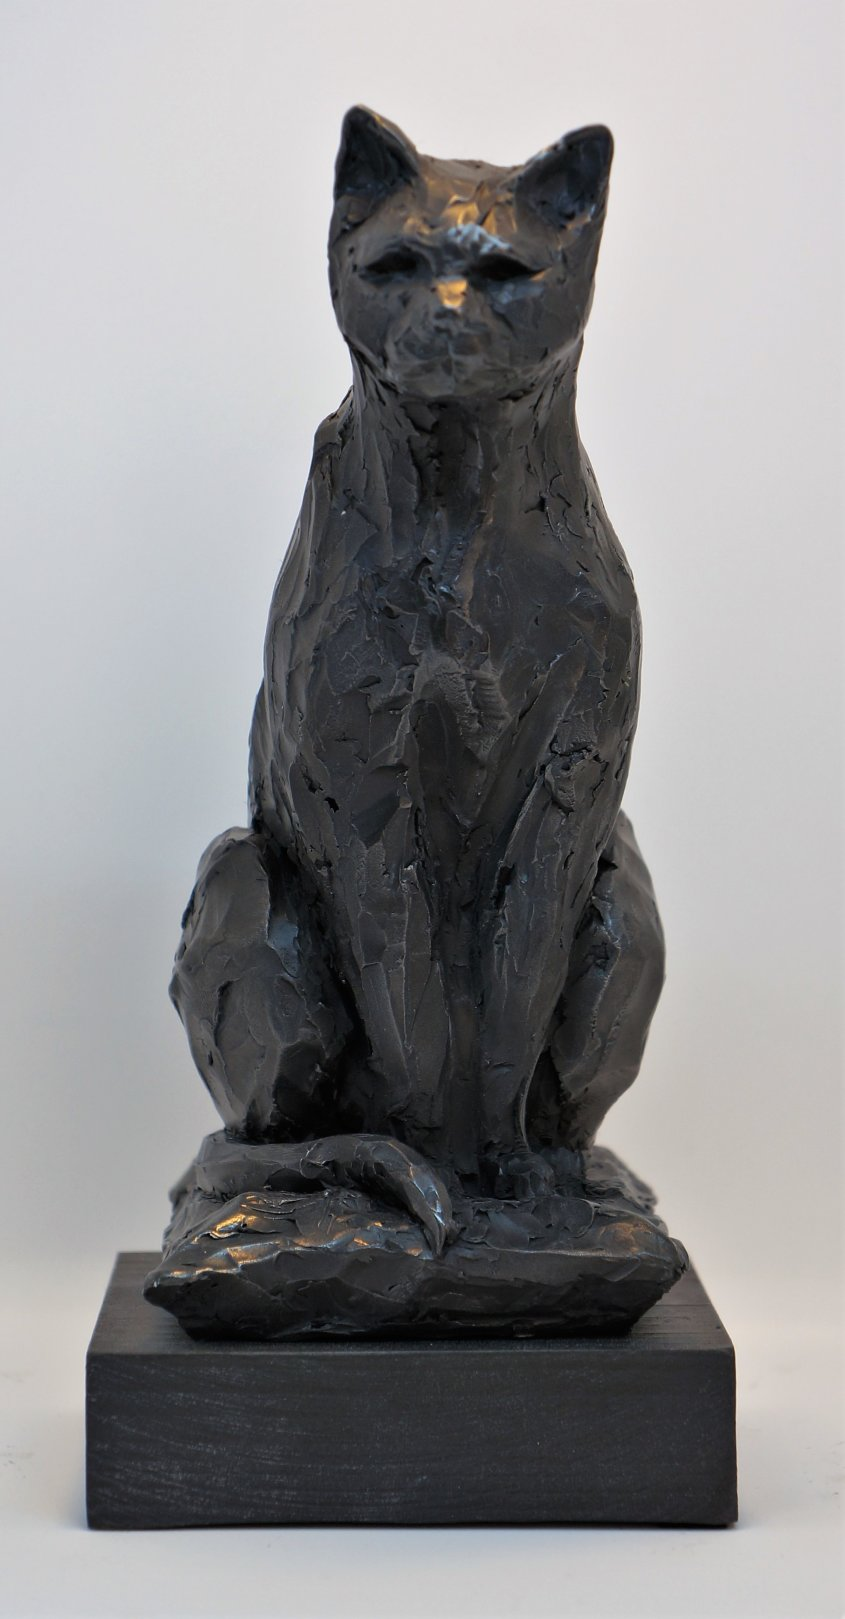 Cat, cold cast iron, approx 25cm tall - £45